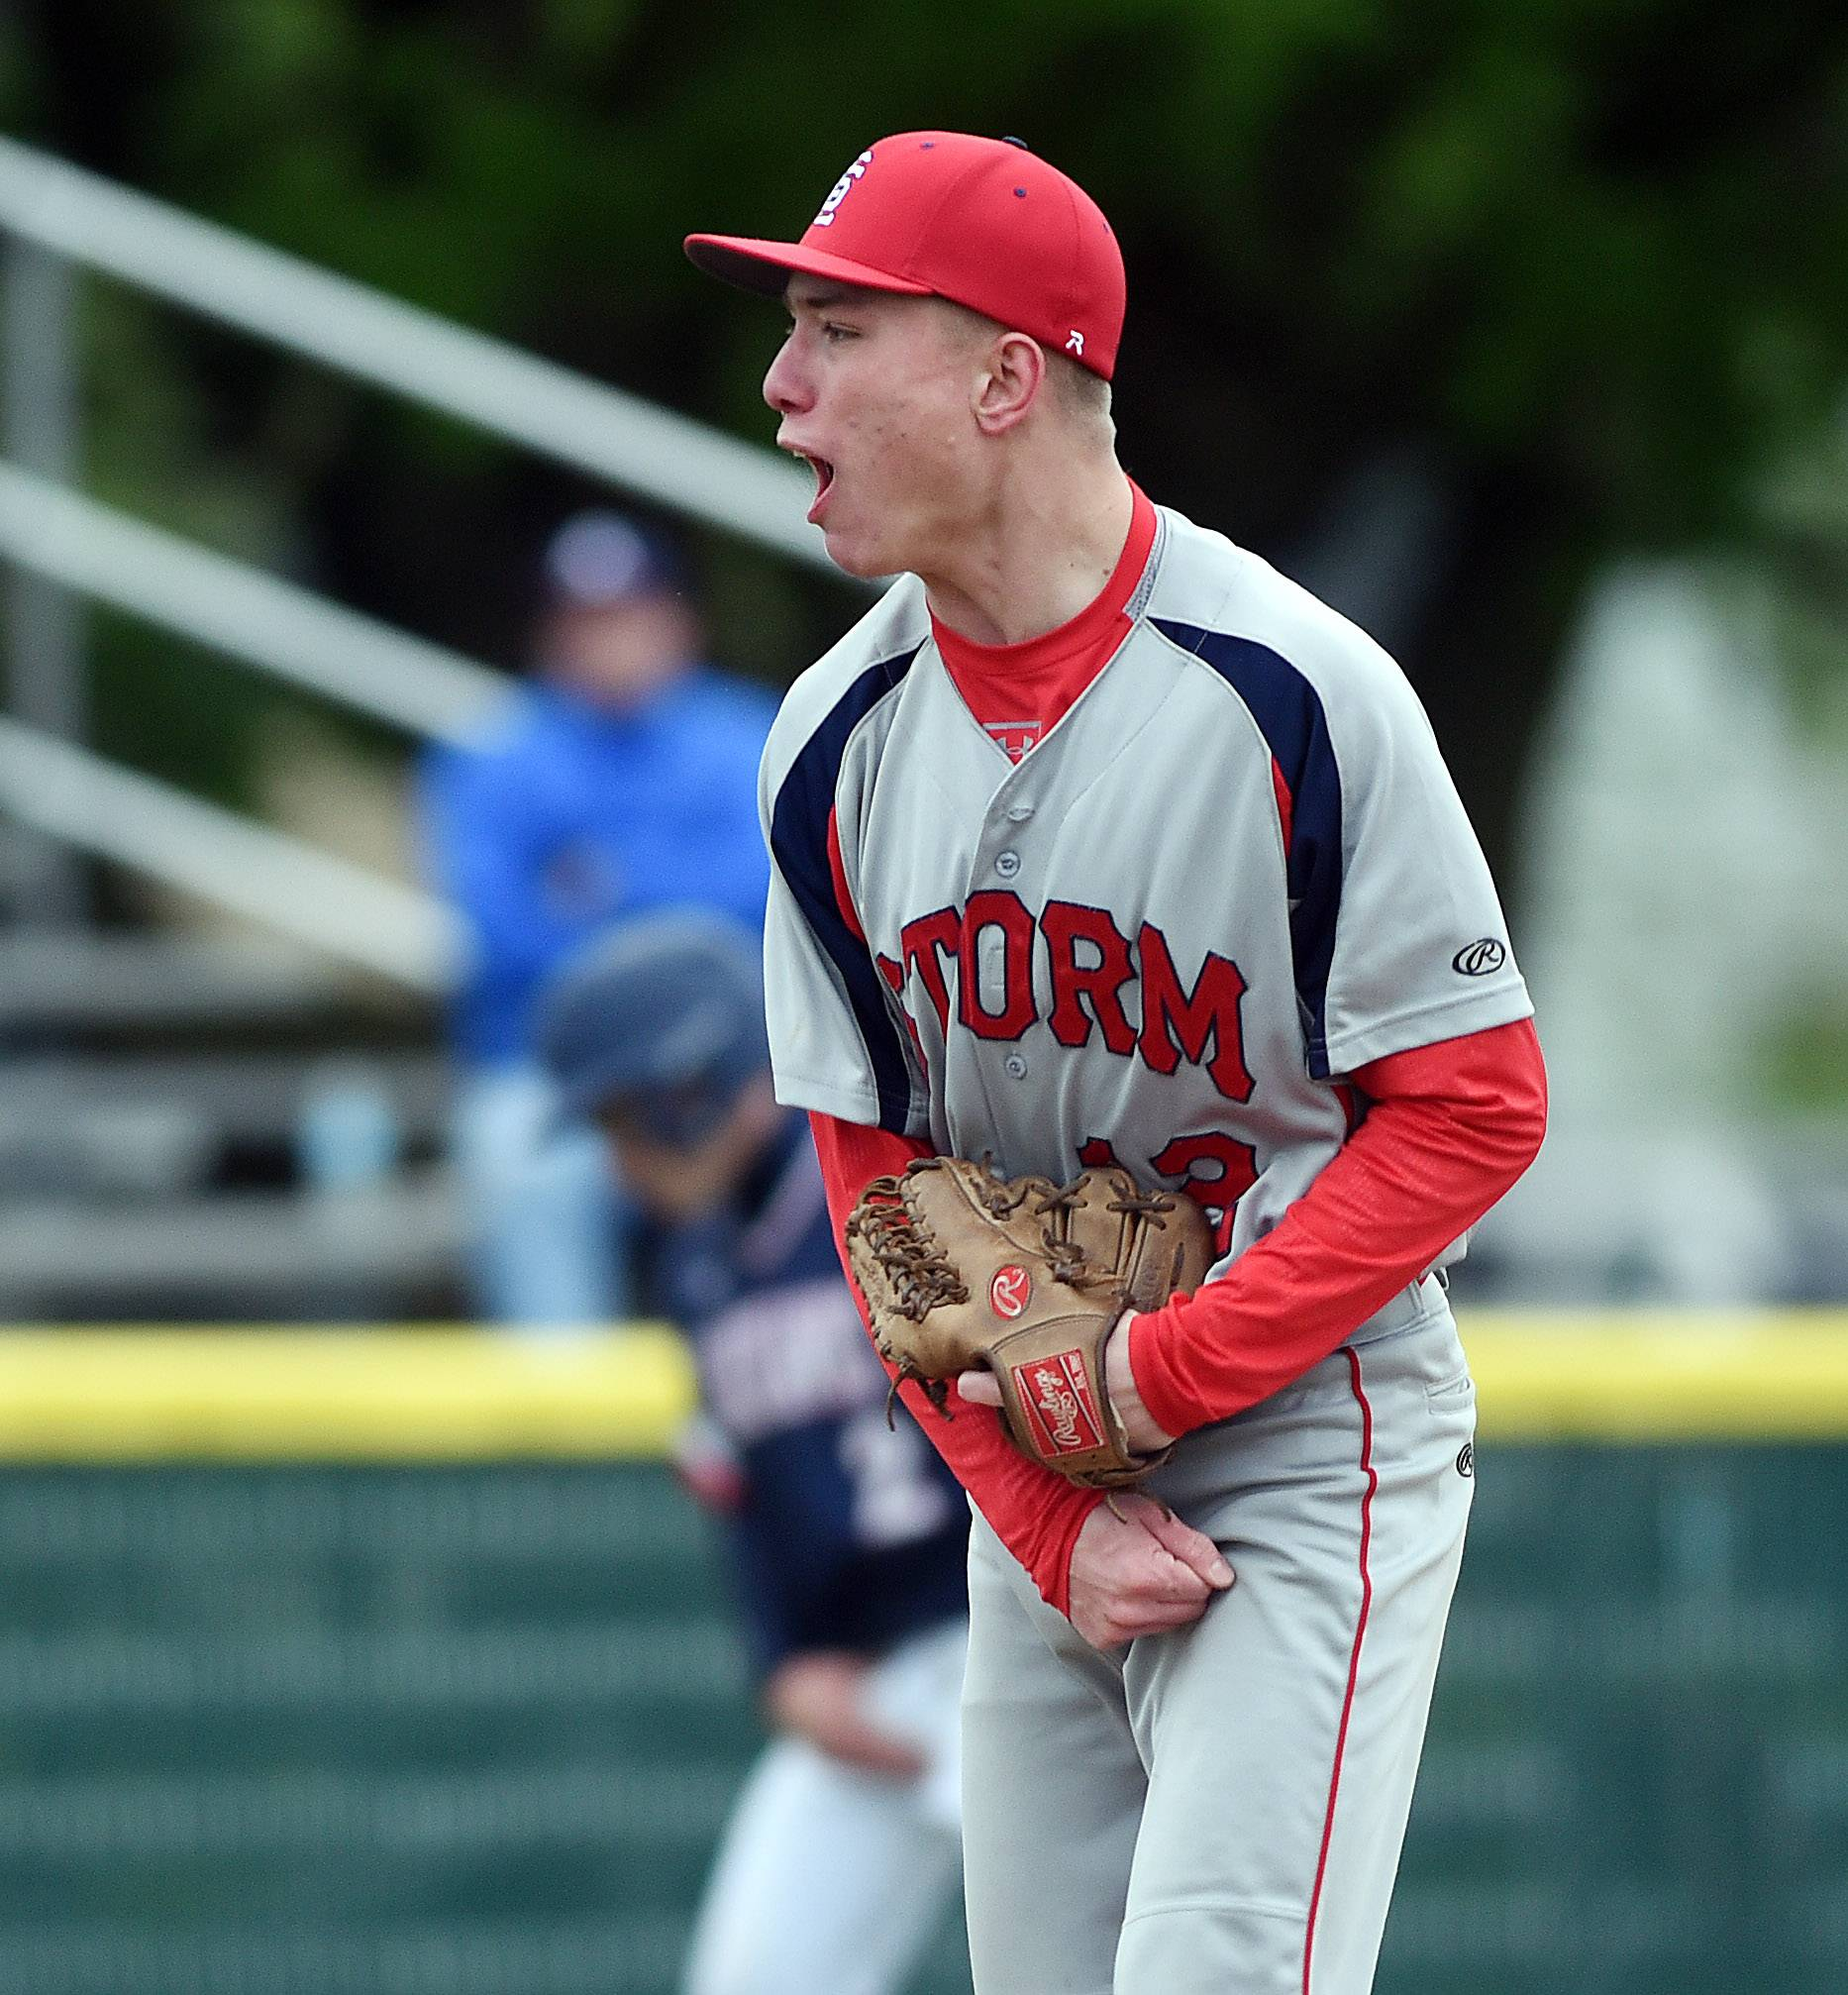 South Elgin pitcher Dylan Wells pumps his fist after a strikeout ends the fifth inning against West Aurora during baseball action in Aurora Thursday.